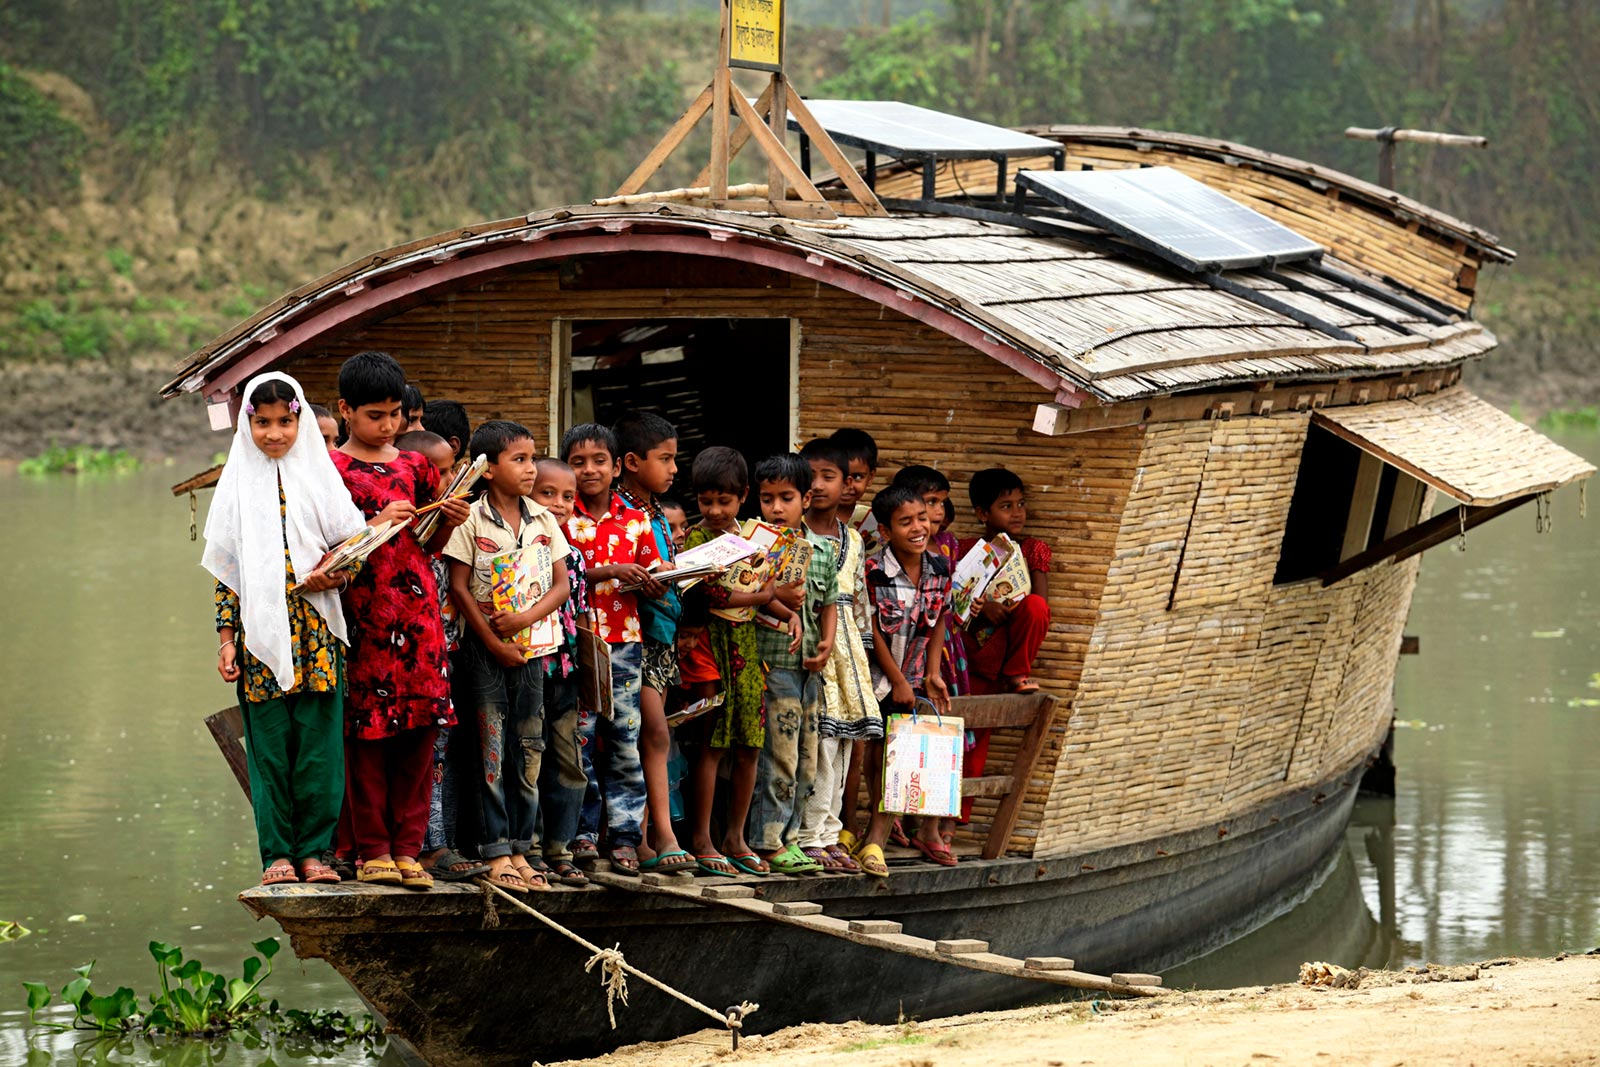 The school-boat travels to the children to provide basic primary education as the children can't travel to the school due to the lack of transportation during flooding in Bangladesh (Natore, 2013). Image Credit: Abir Abdullah/ Shidhulai Swanirvar